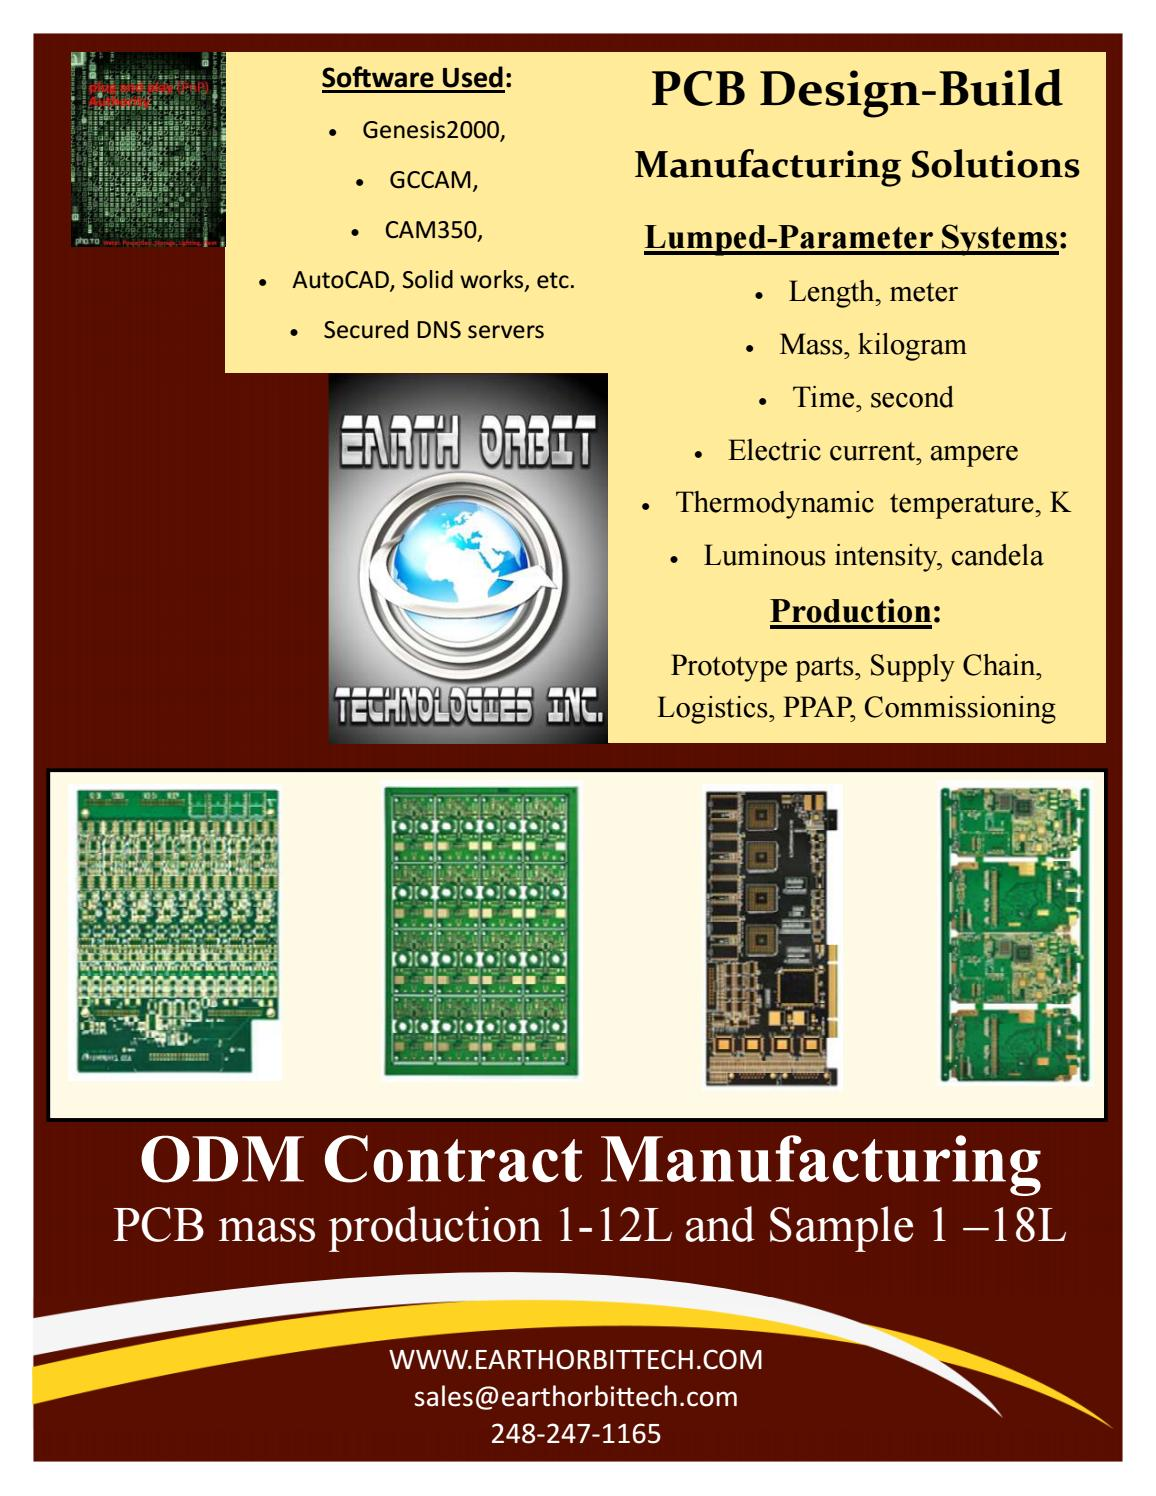 Lumped-Parameter PCB systems by Earth Orbit Technologies